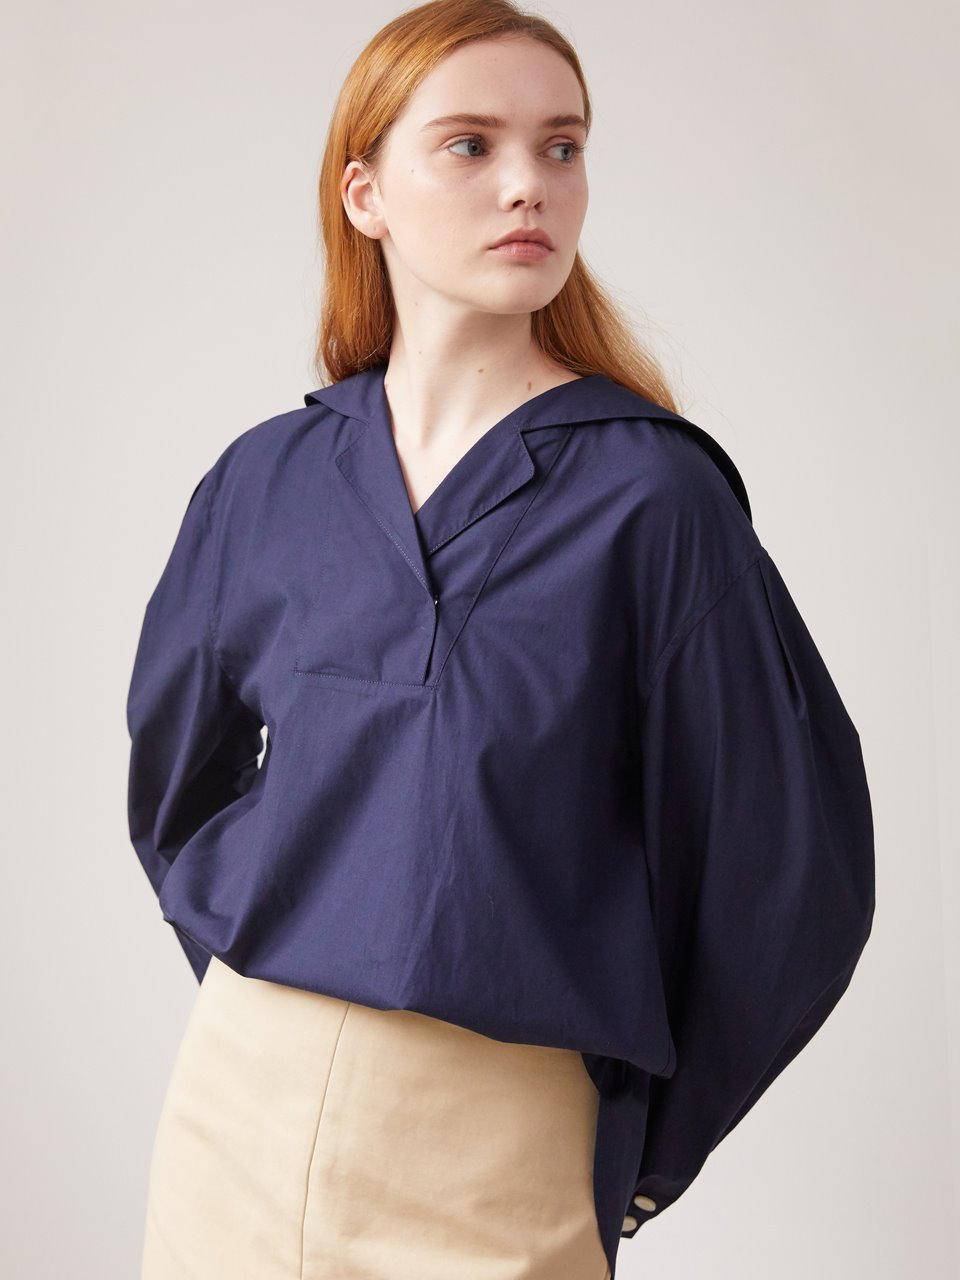 Sailor collar blouse - Navy